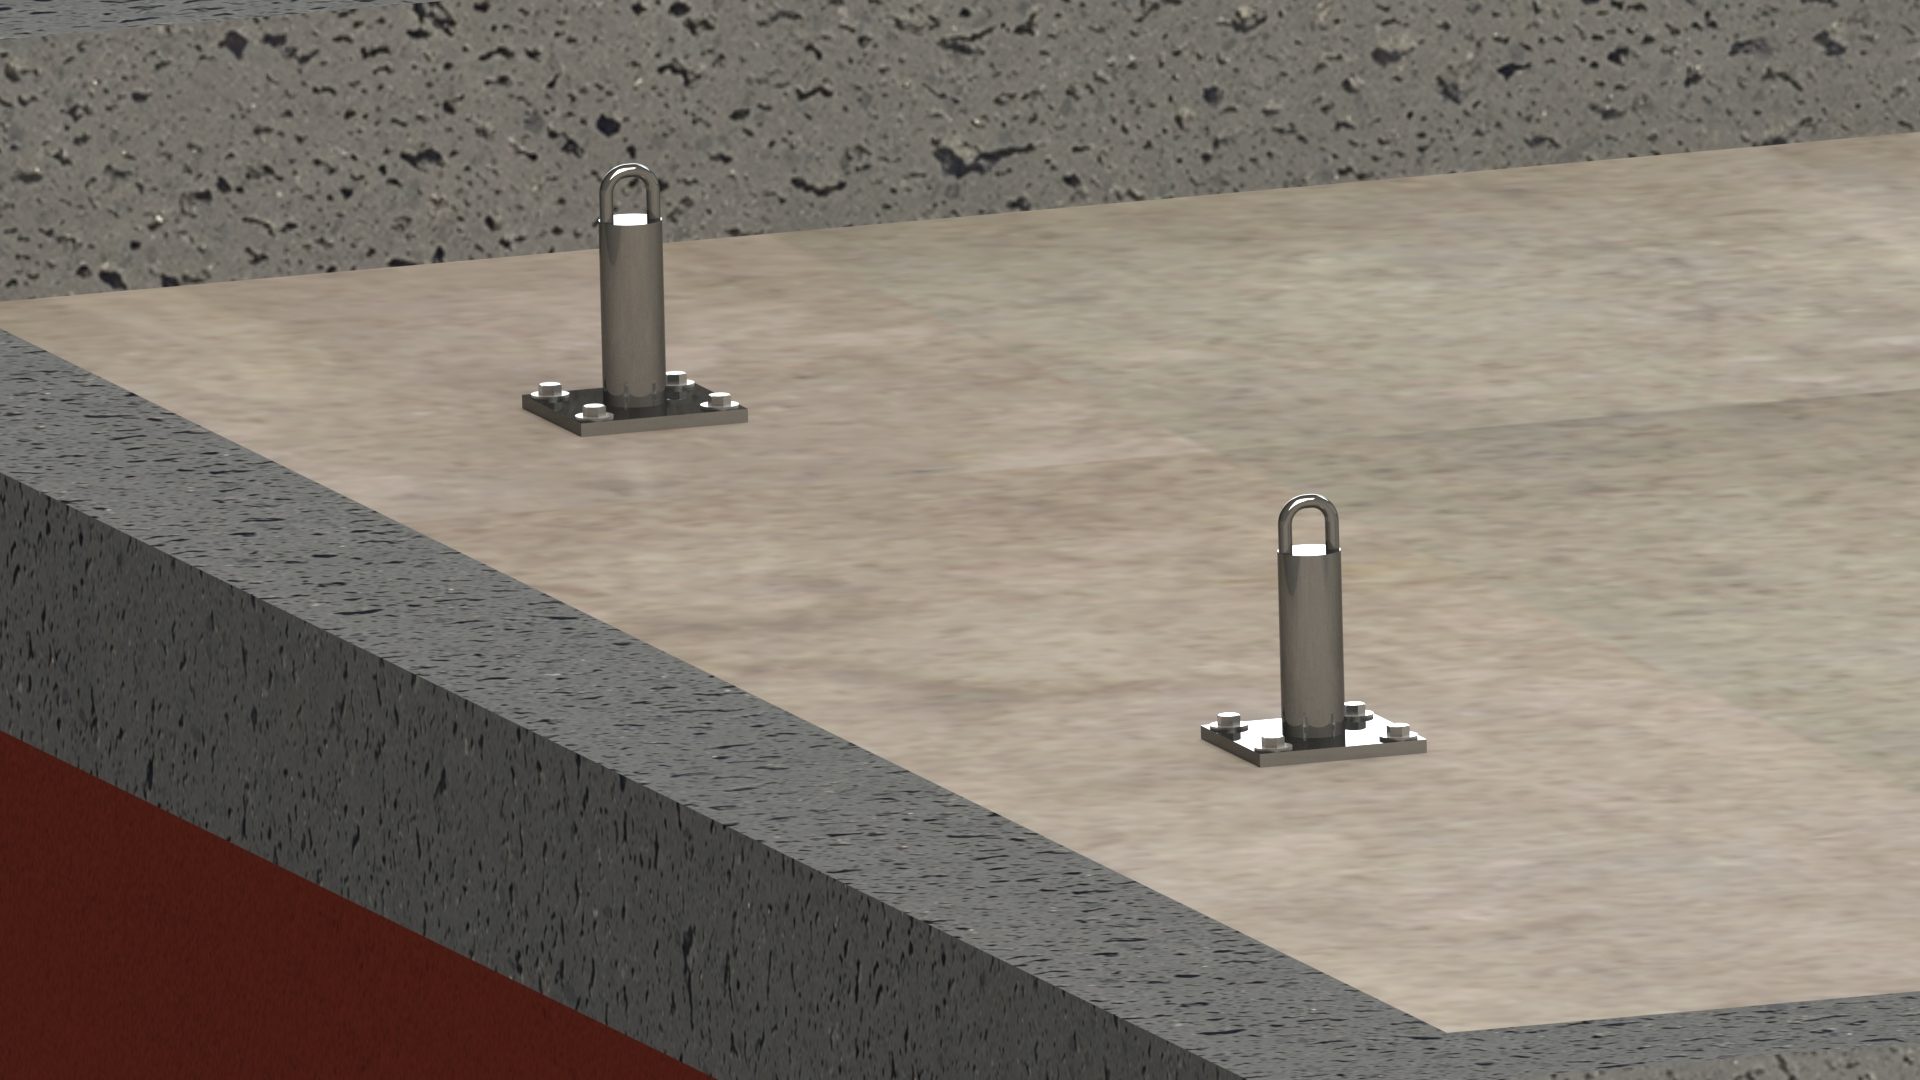 Tie Back Anchors Wrs Fall Protection Systems And Osha